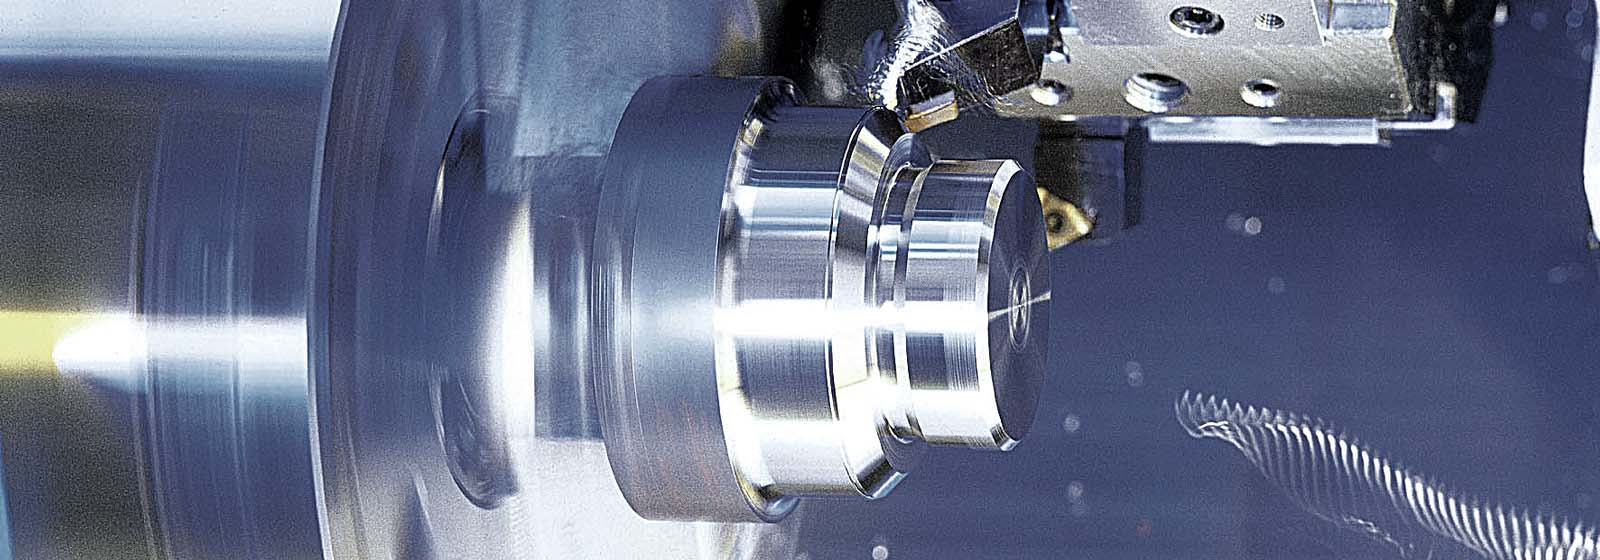 CNC machine turning metal workpiece